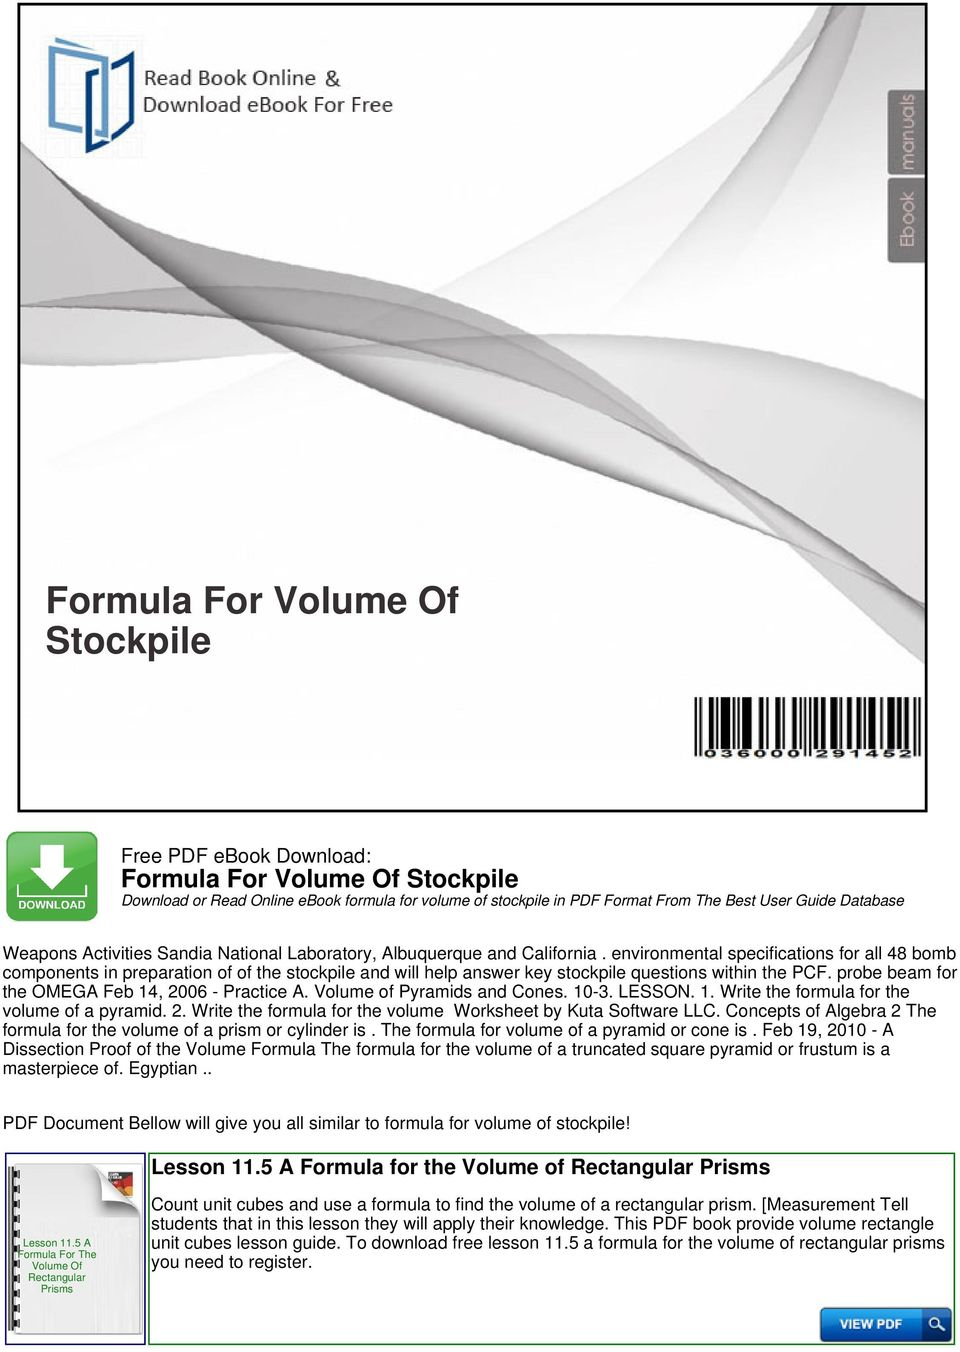 Formula For Volume Of Stockpile Pdf